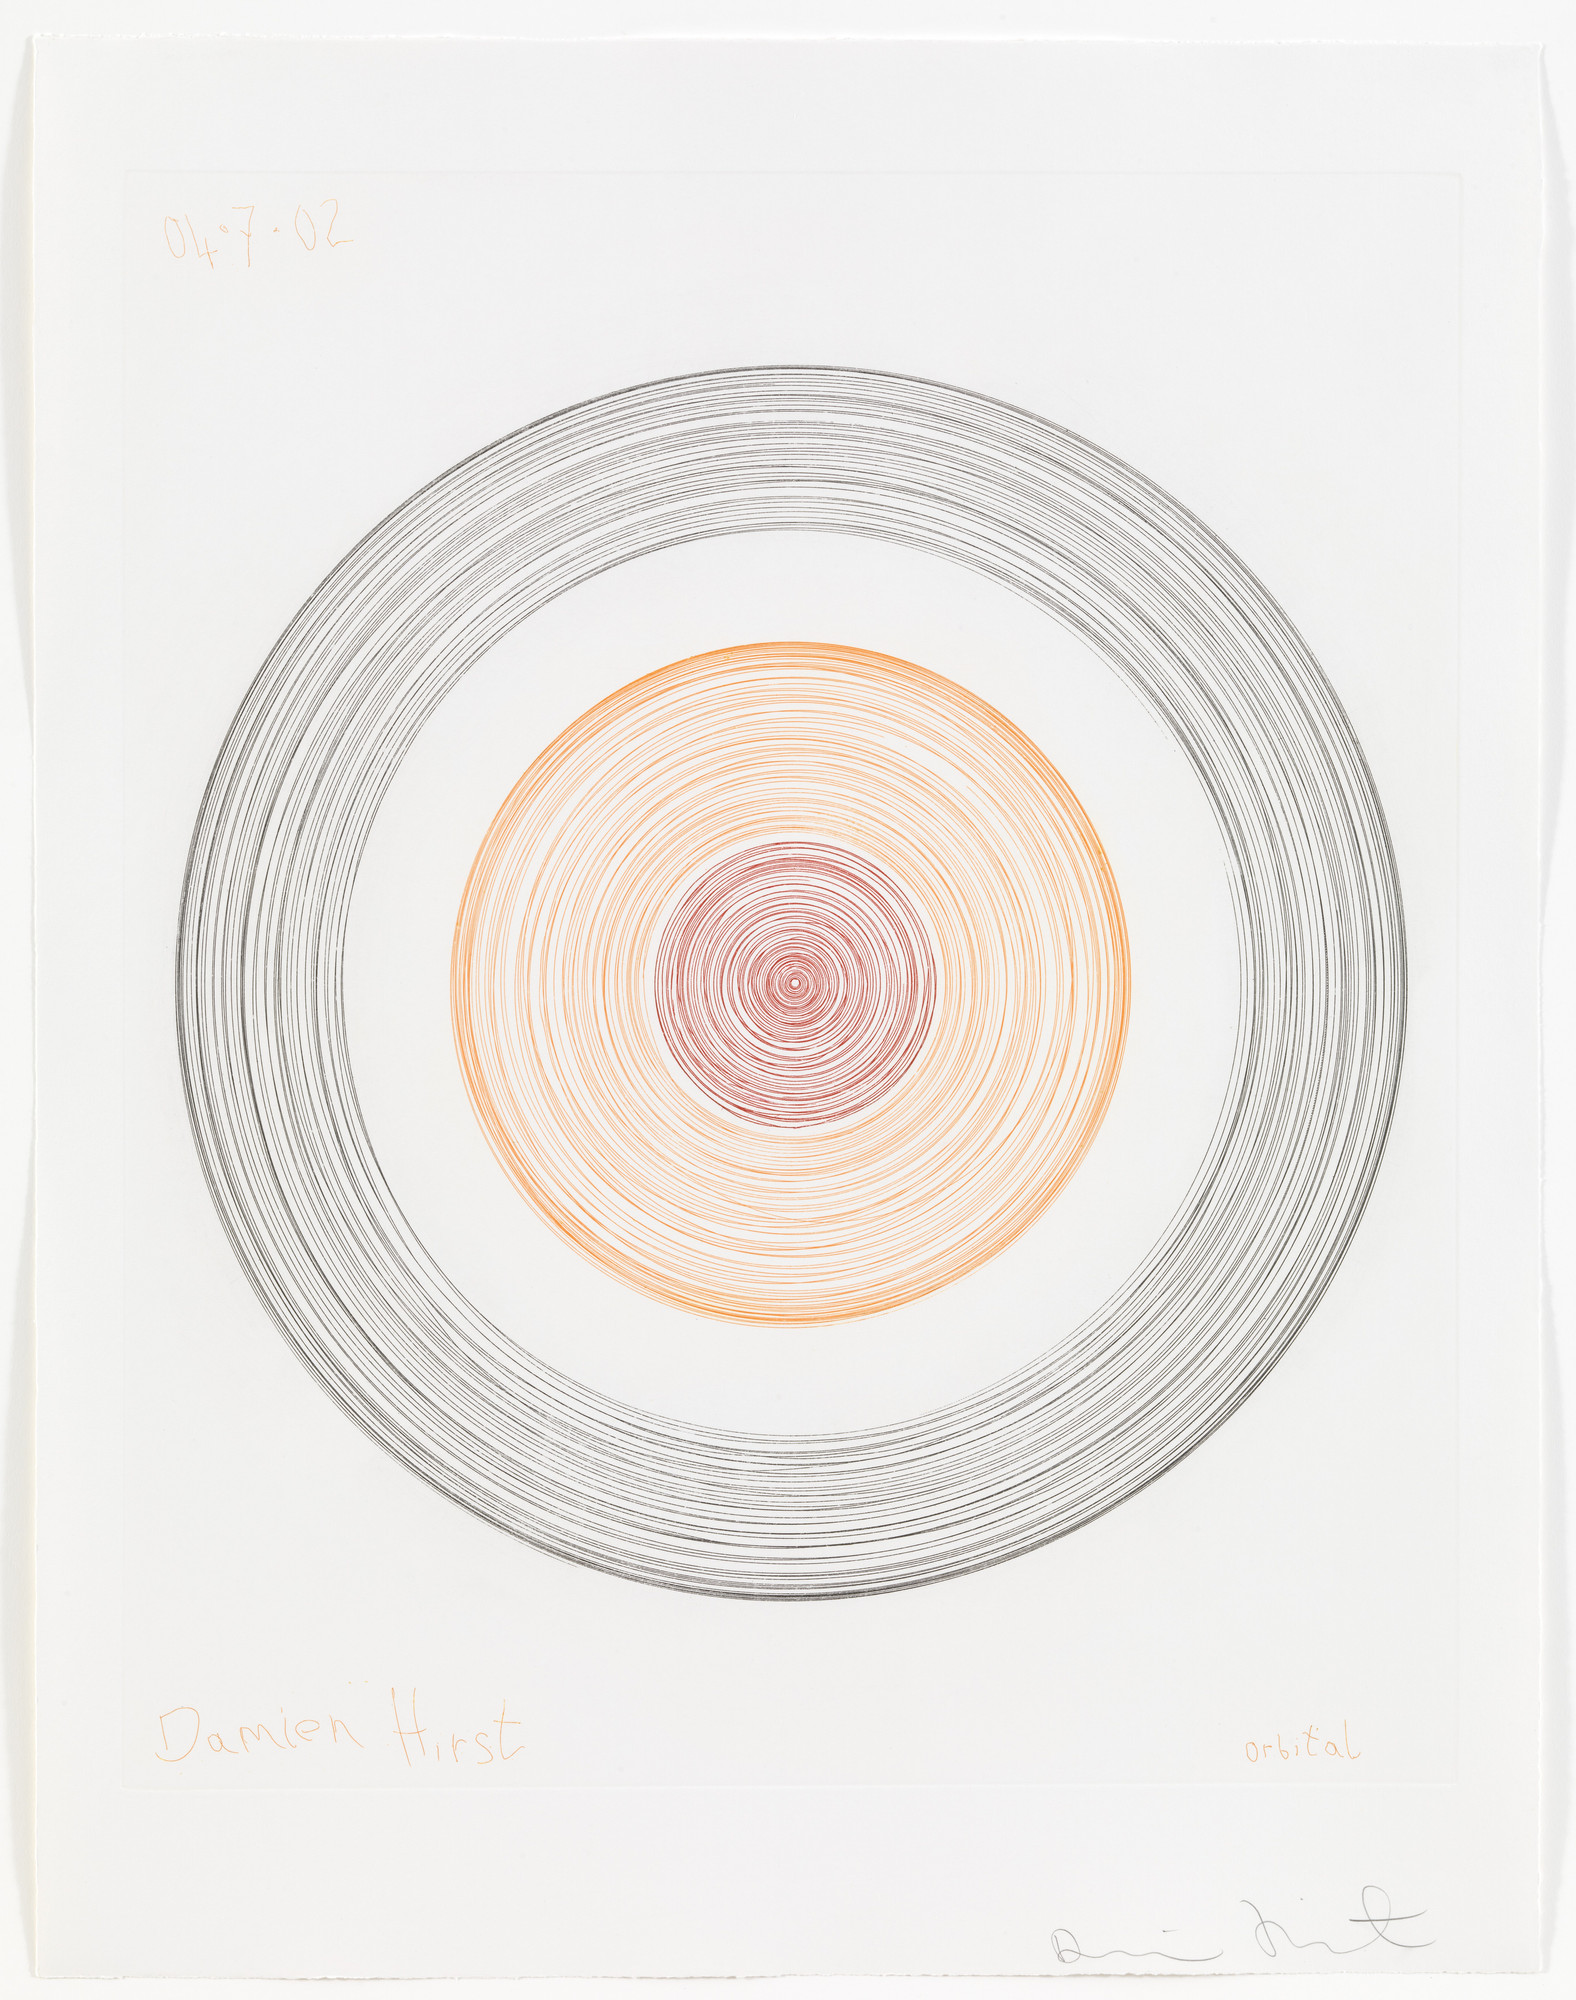 Damien Hirst. Orbital from In a Spin, the Action of the World on Things, Volume 1. 2002